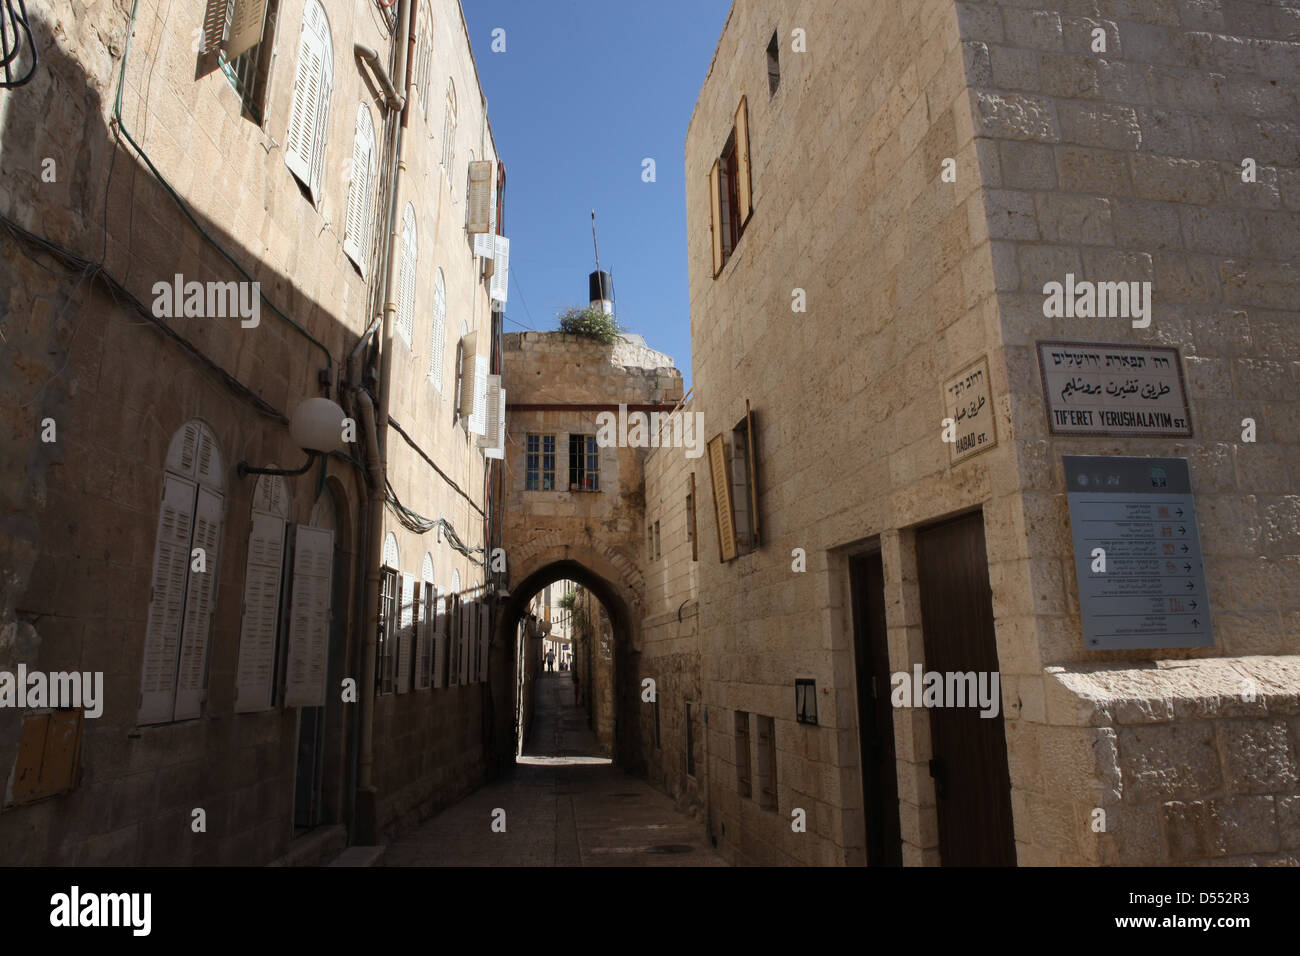 Israel, Jerusalem, Old City, the Jewish Quarter - Stock Image